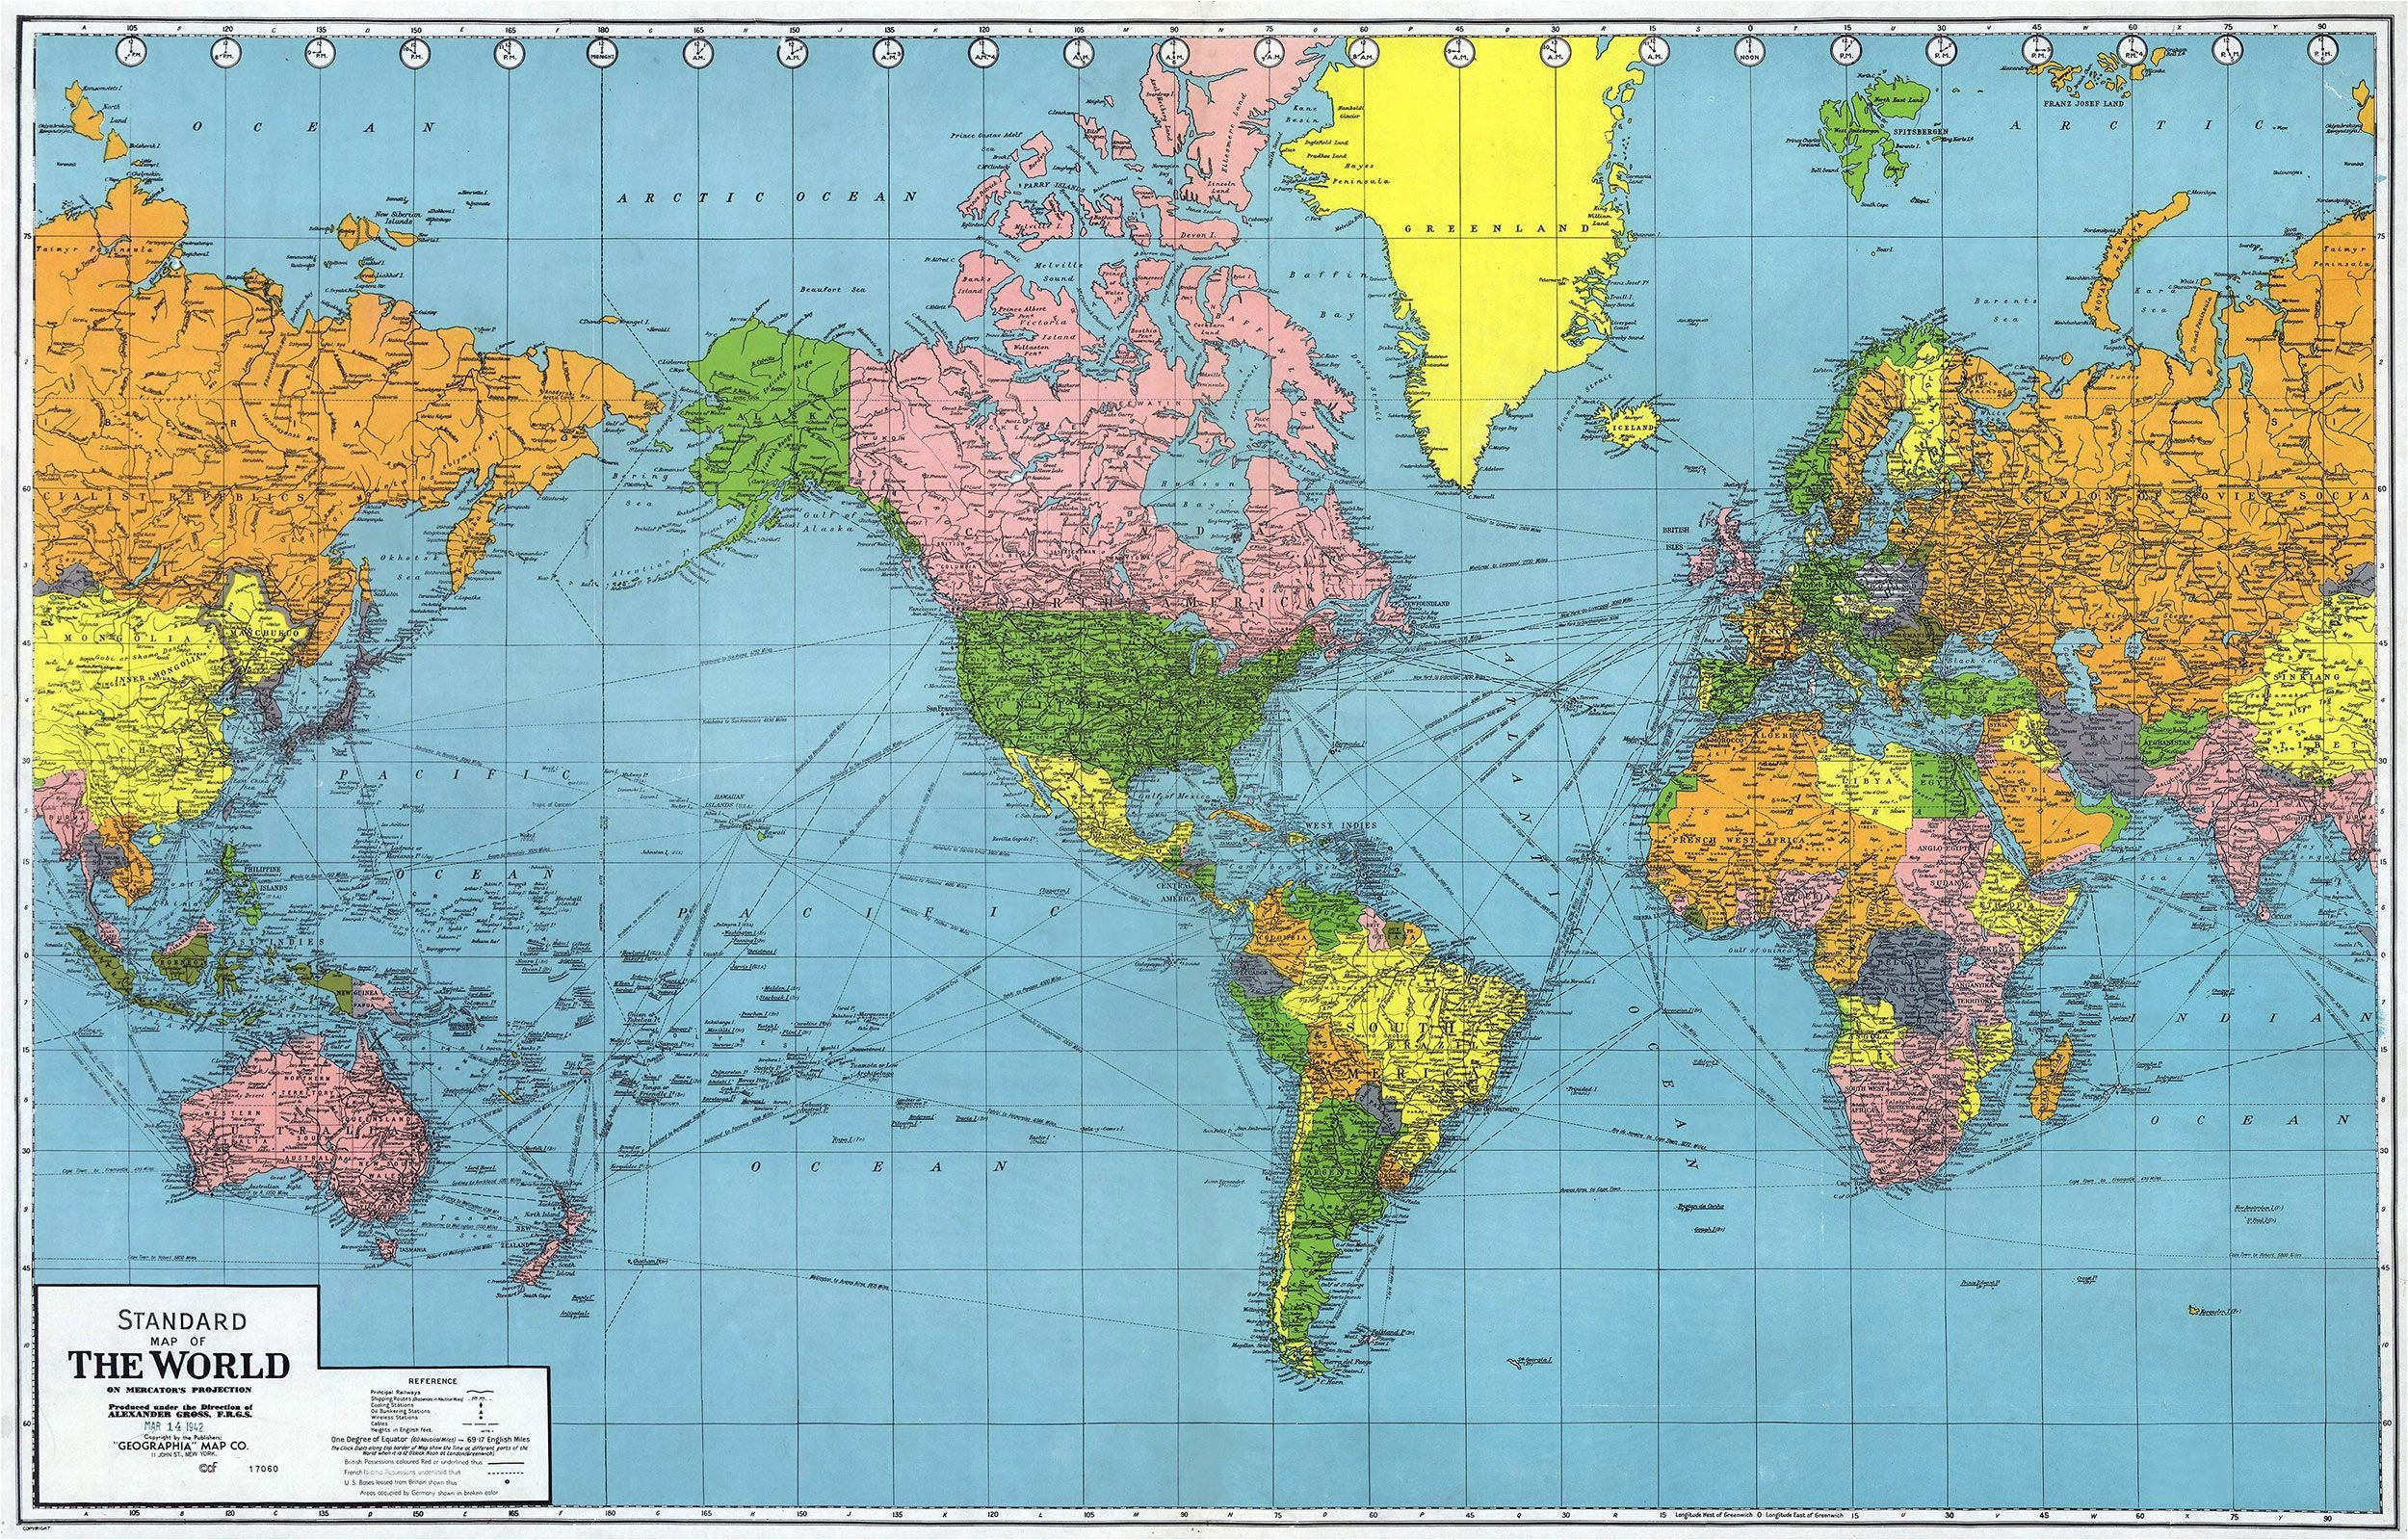 Picture of: Time World Map Longitude And Lattitude Fresh World World Map With Latitude And Longitude Hd 2500×1599 Wallpaper Teahub Io